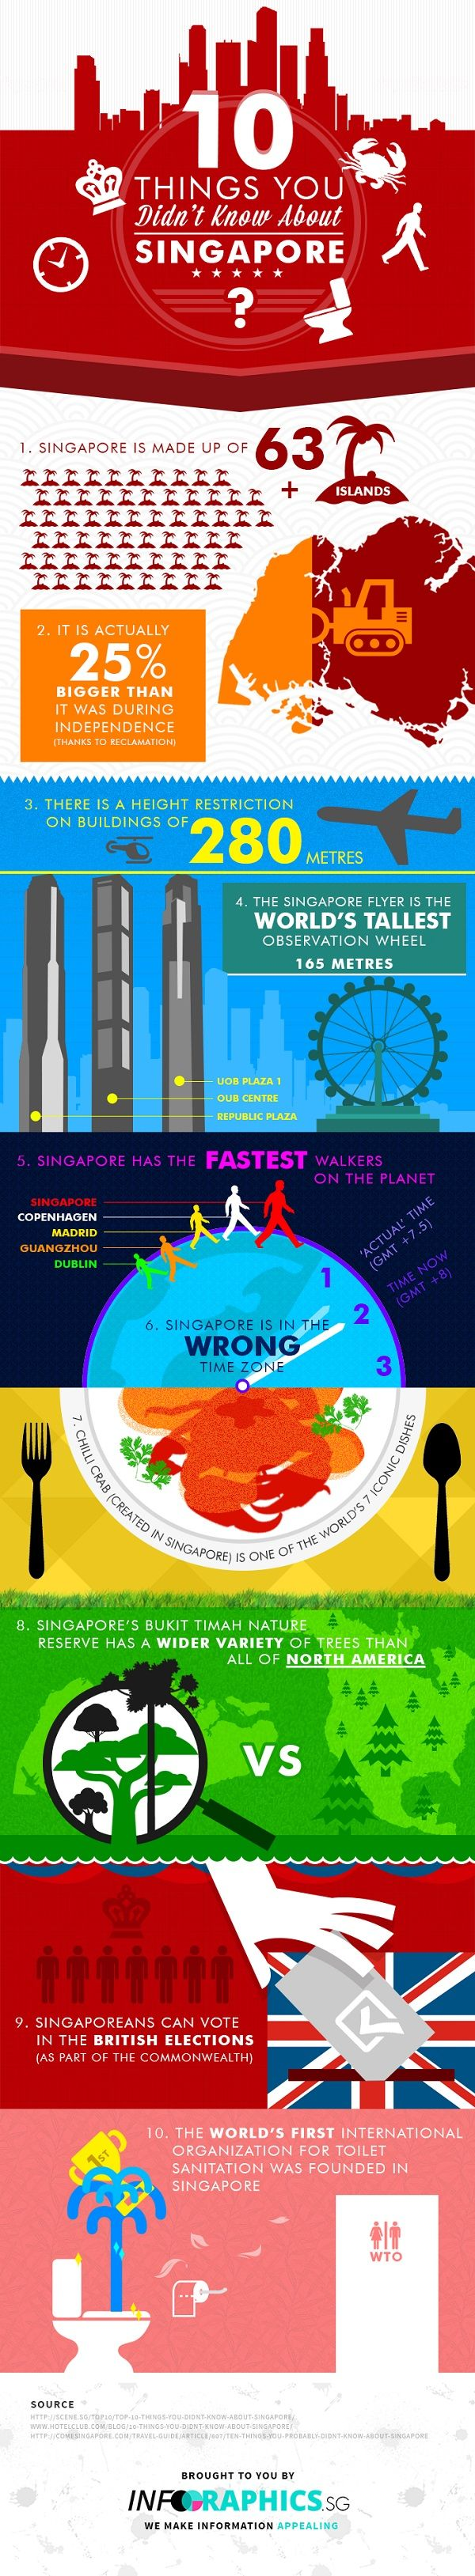 10-Things-About-Singapore